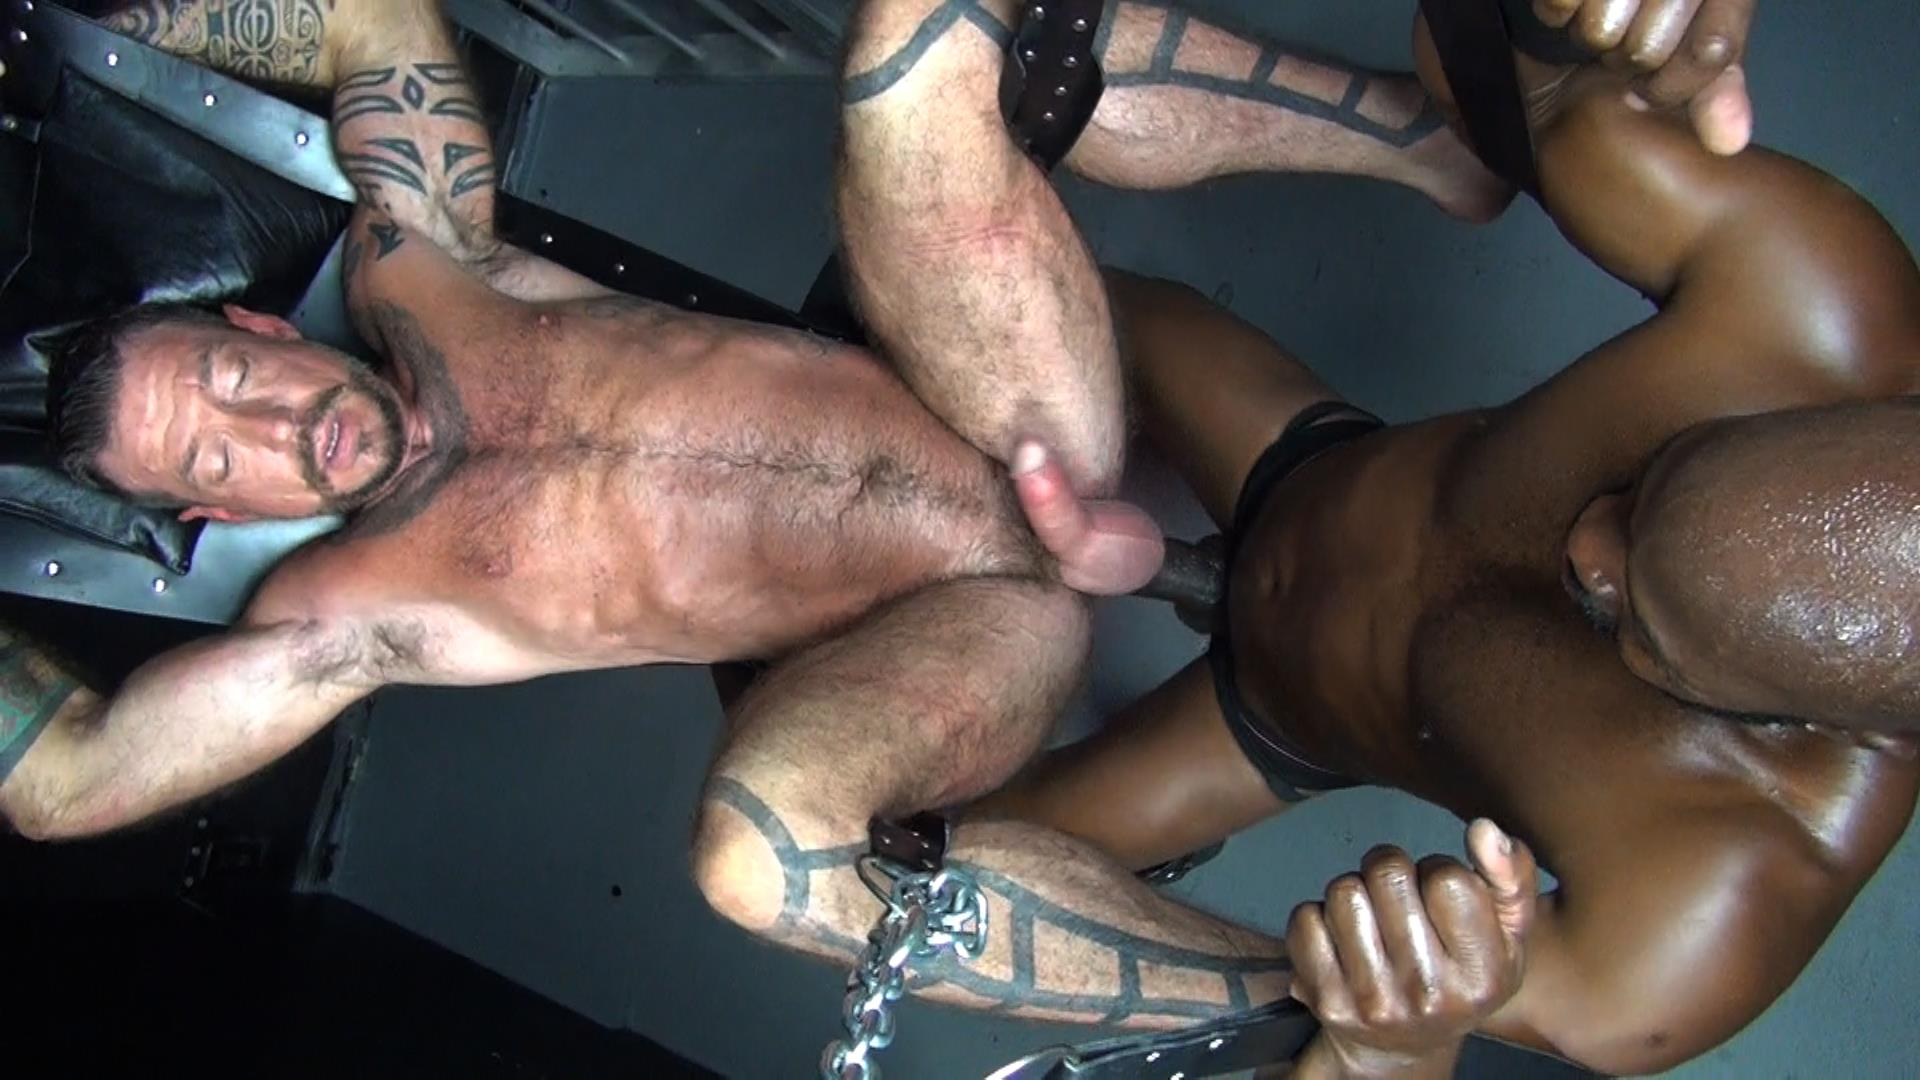 Raw-Fuck-Club-Cutler-X-and-Ray-Dalton-Interracial-Bareback-Sex-Amateur-Gay-Porn-2 Cutler X Barebacking Hairy Muscle Daddy Ray Dalton With His Big Black Cock